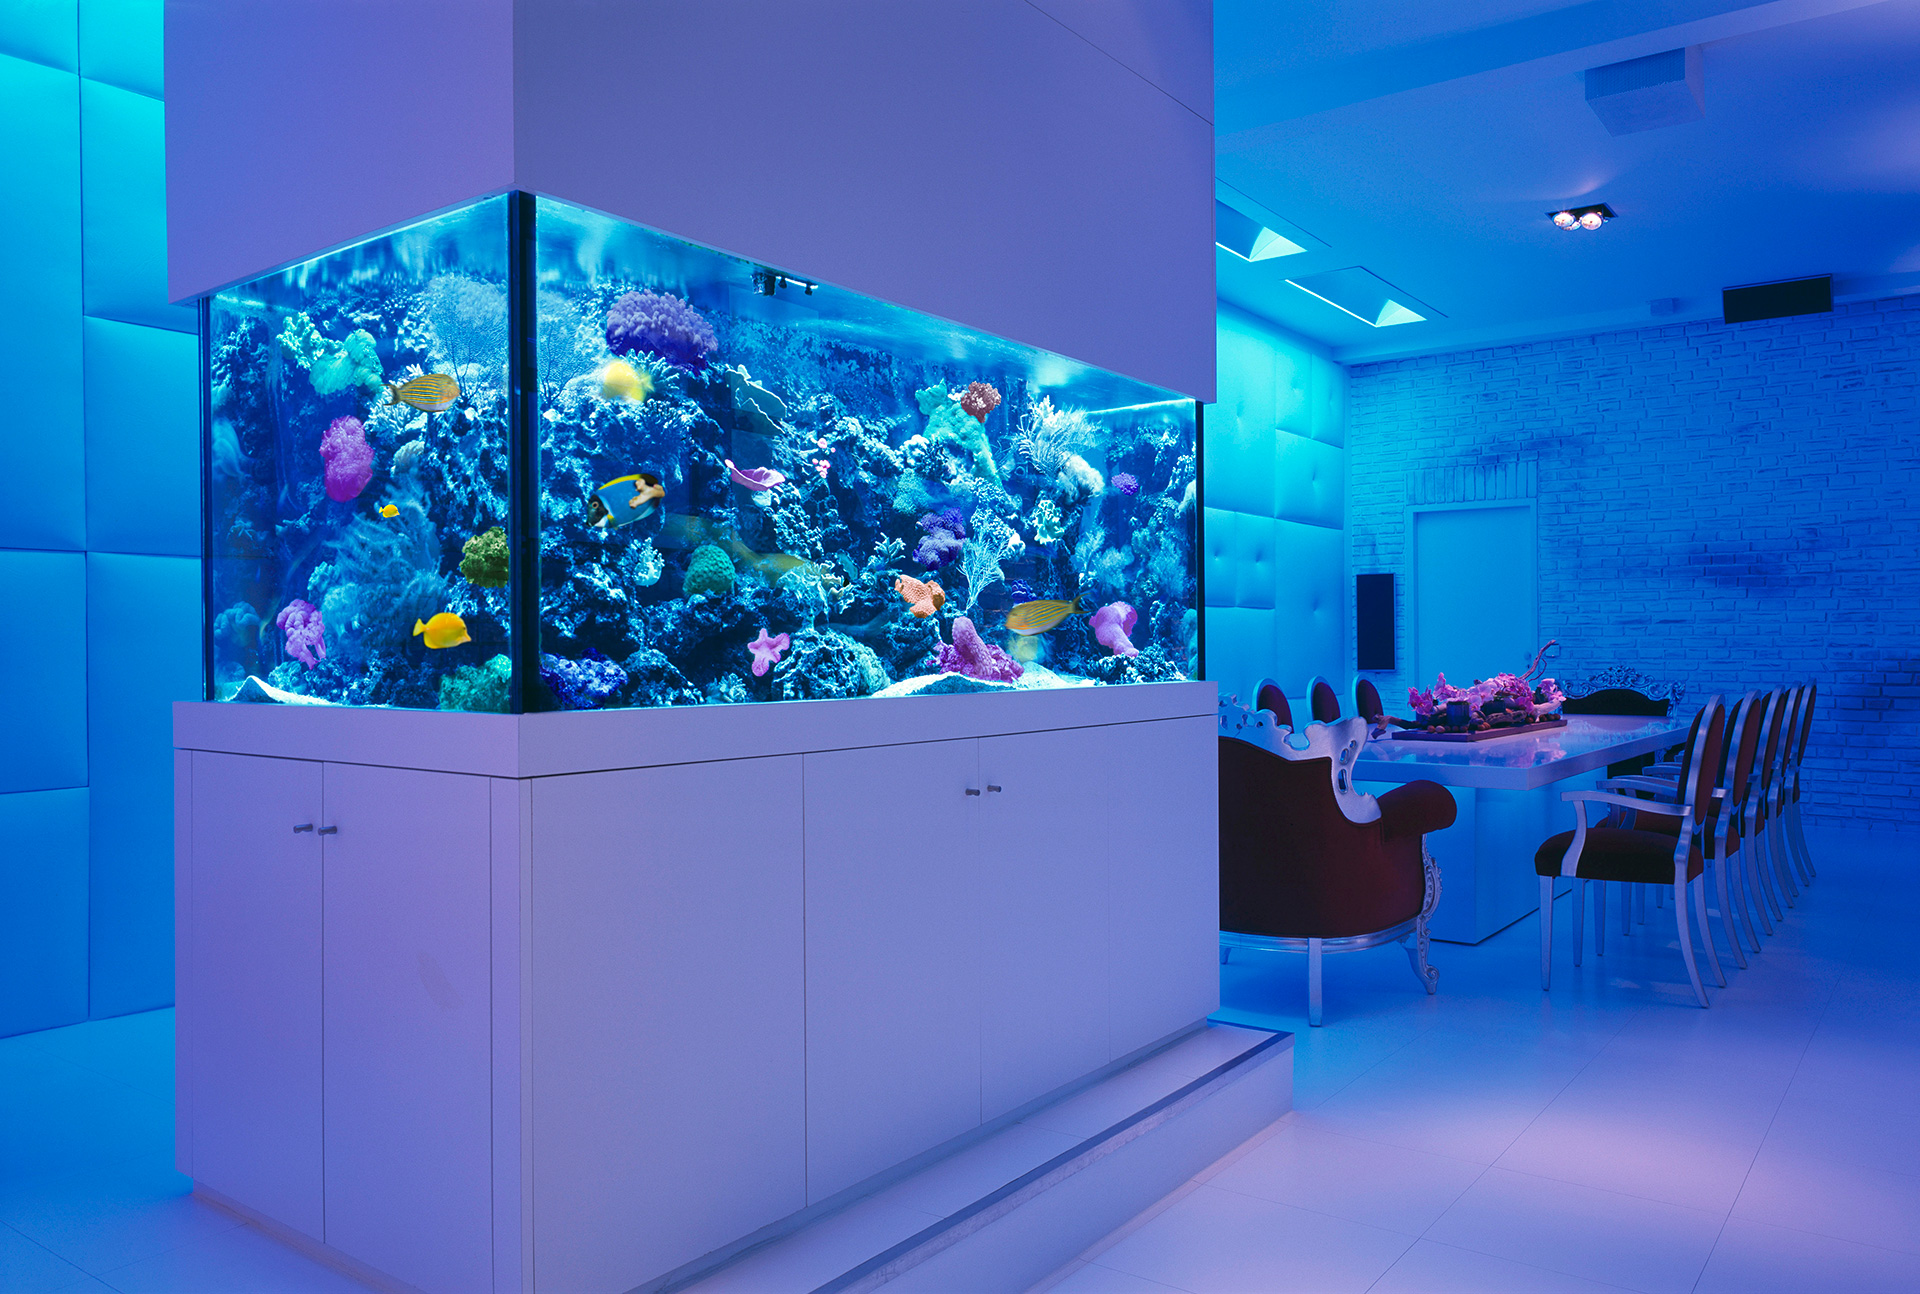 25 Rooms With Stunning Aquariums - Decoholic on home pool room, home museum room, home library room, home casino room, home spa room, home dog room, home tennis room, home cinema room, gardening room, home plant room, home planetarium room, home fishing room, home gym room, home hospital room, home science room, home golf room, home photography room, home bar room, home games room, home art room,